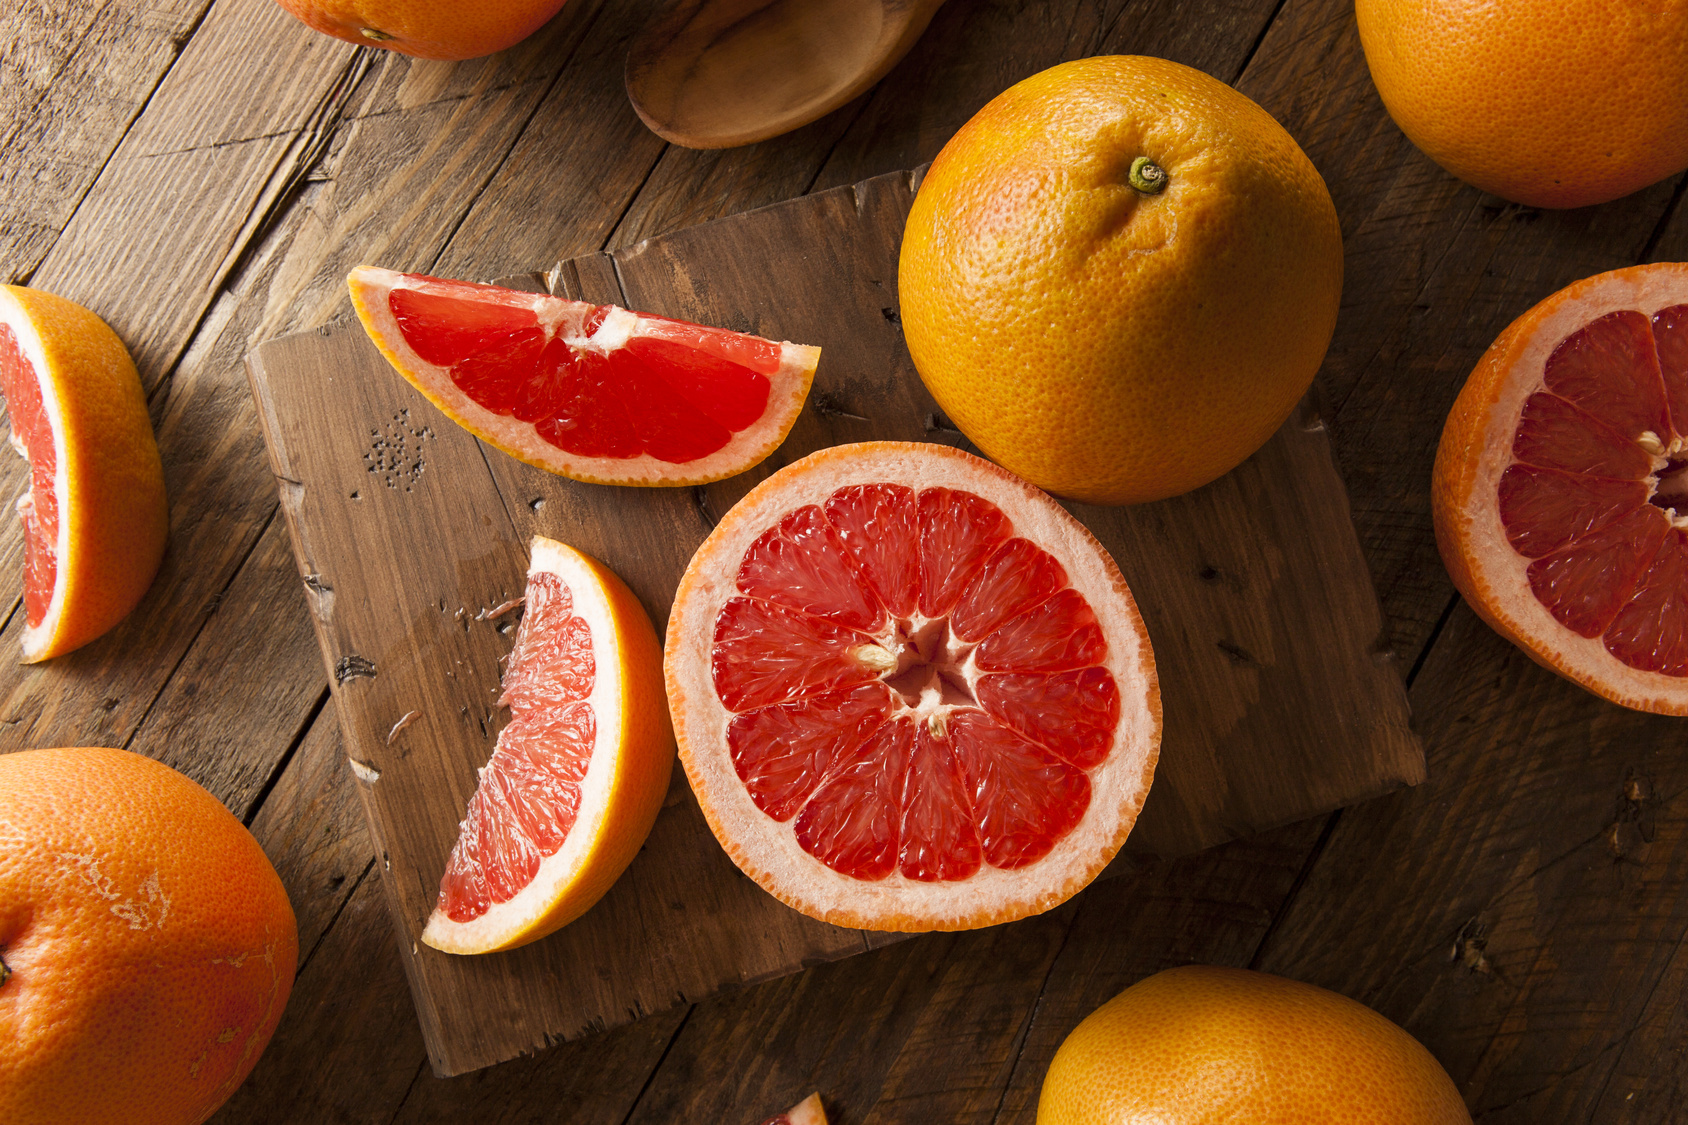 Healthy Organic Red Ruby Grapefruit on a Background